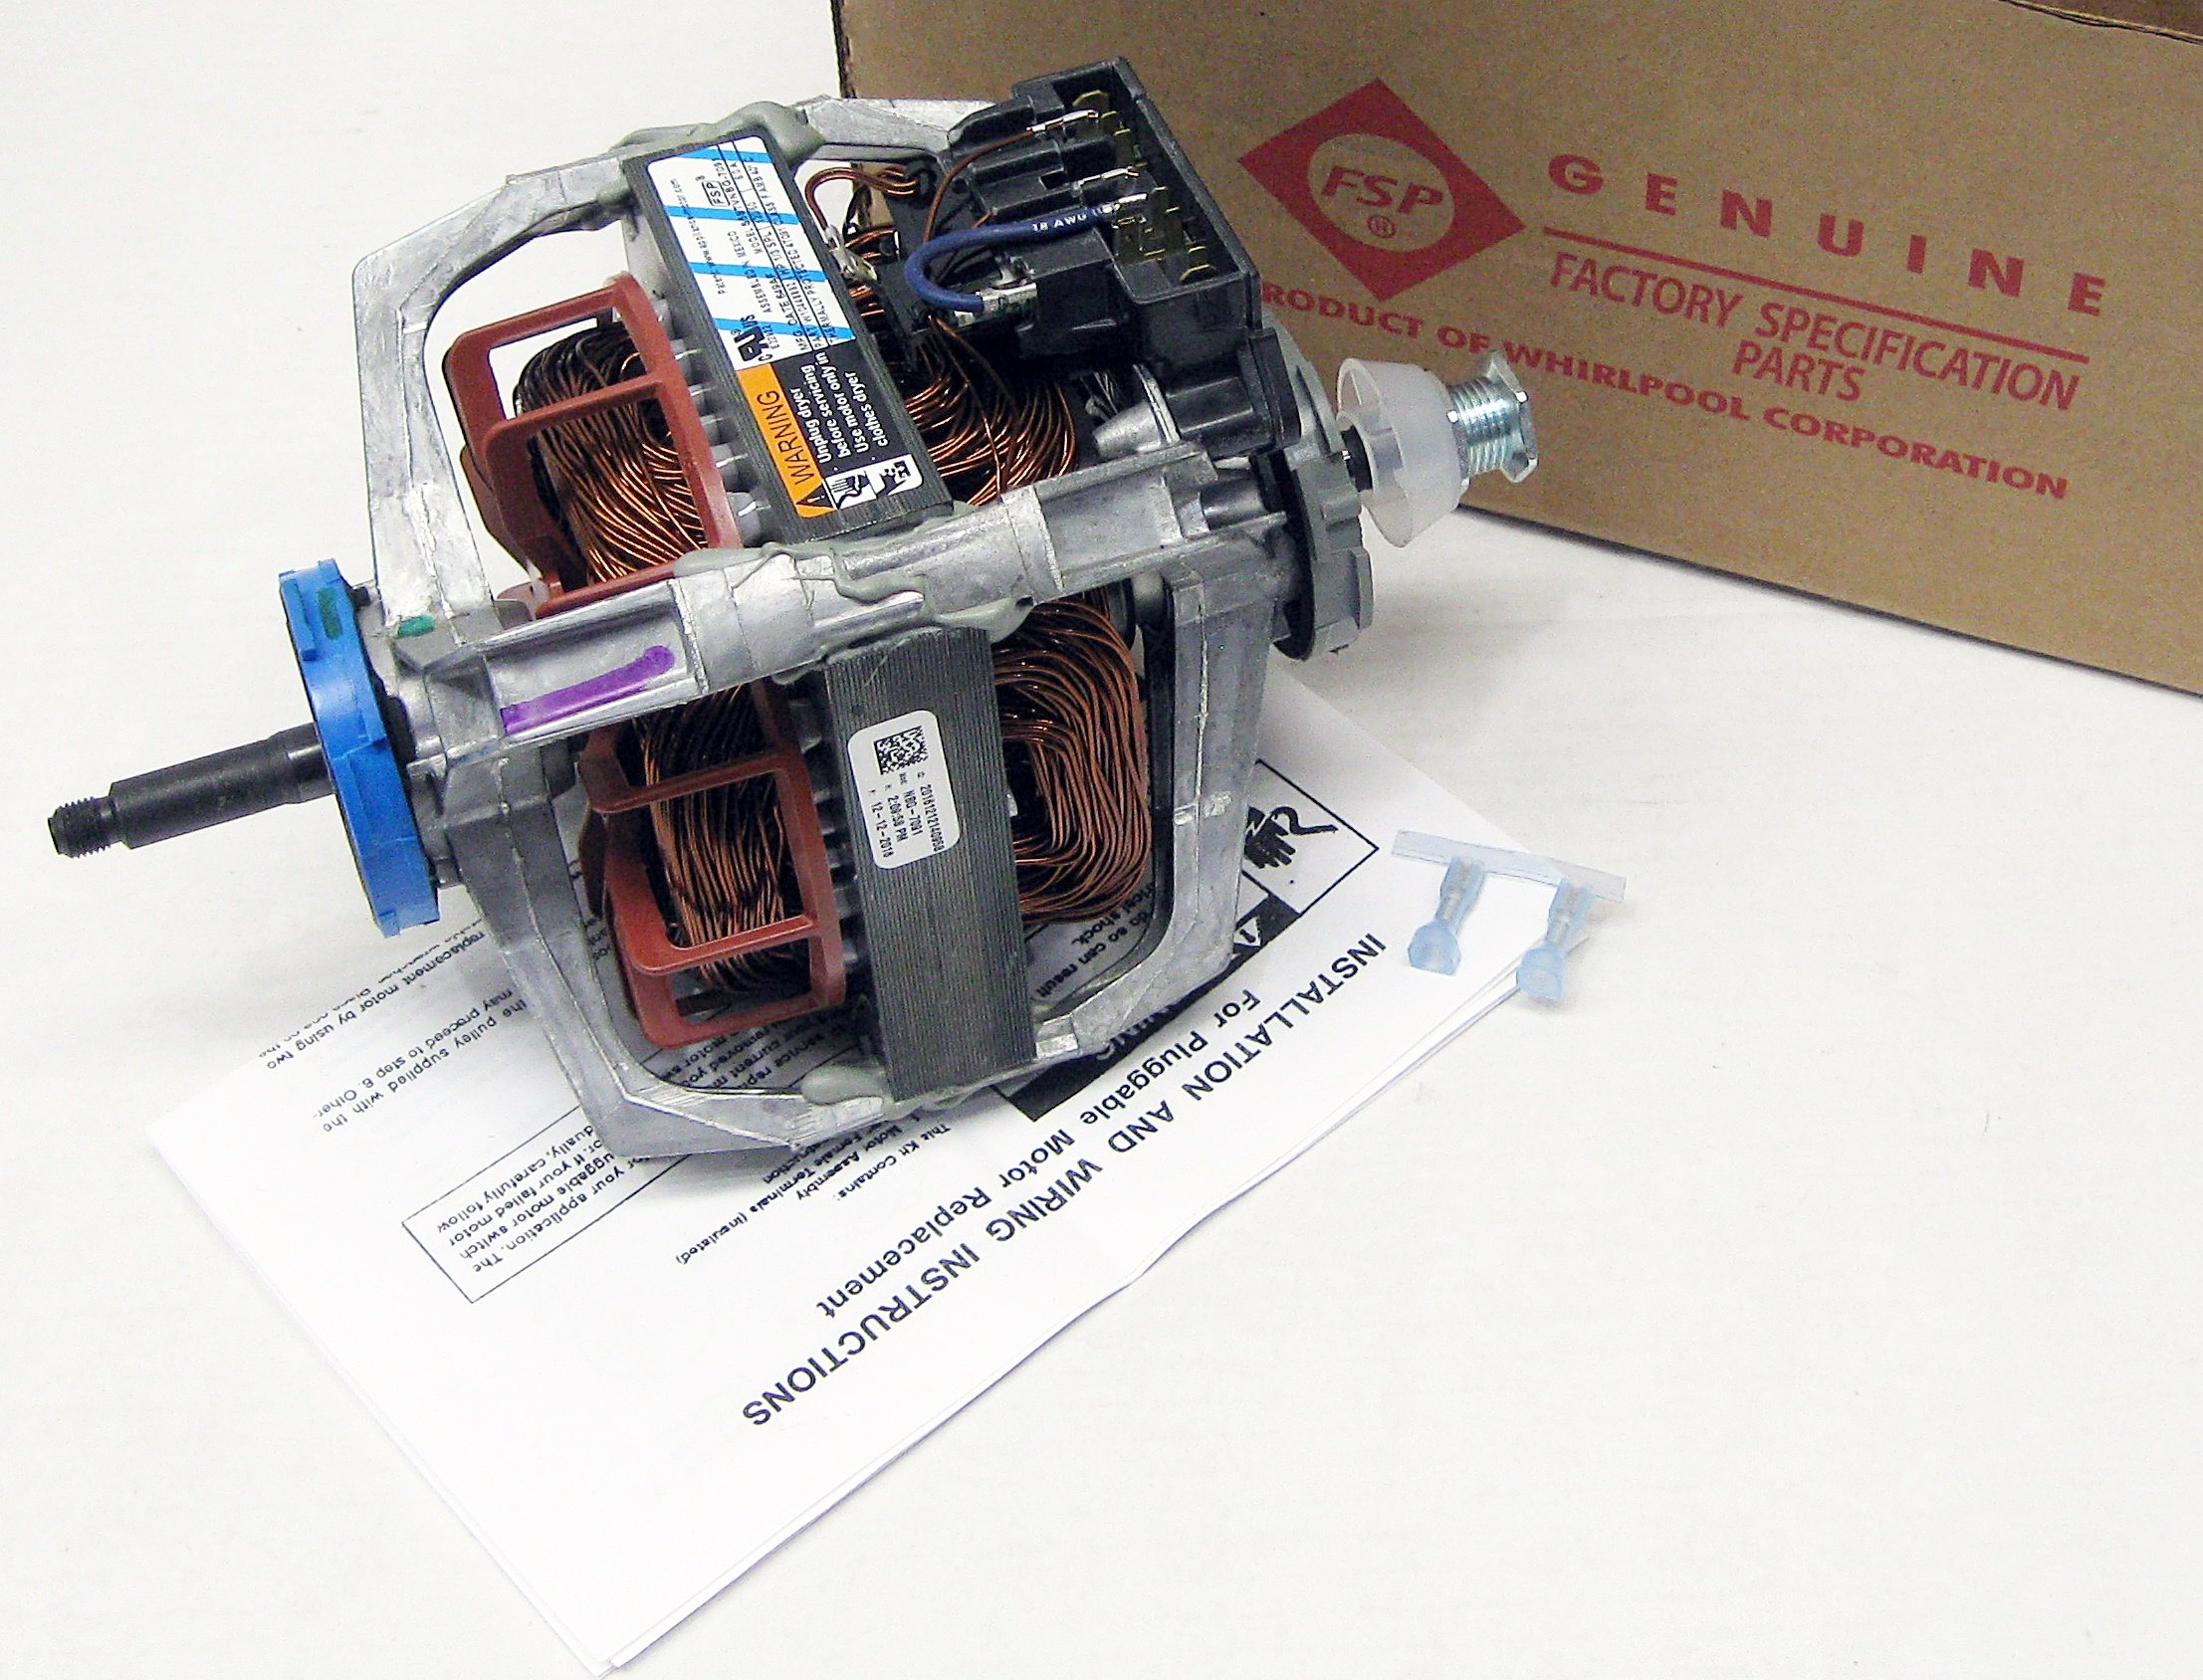 whirlpool dryer motor parts amazon comnew replacement part dryer drive motor for whirlpool, sears, kenmore part 8066206